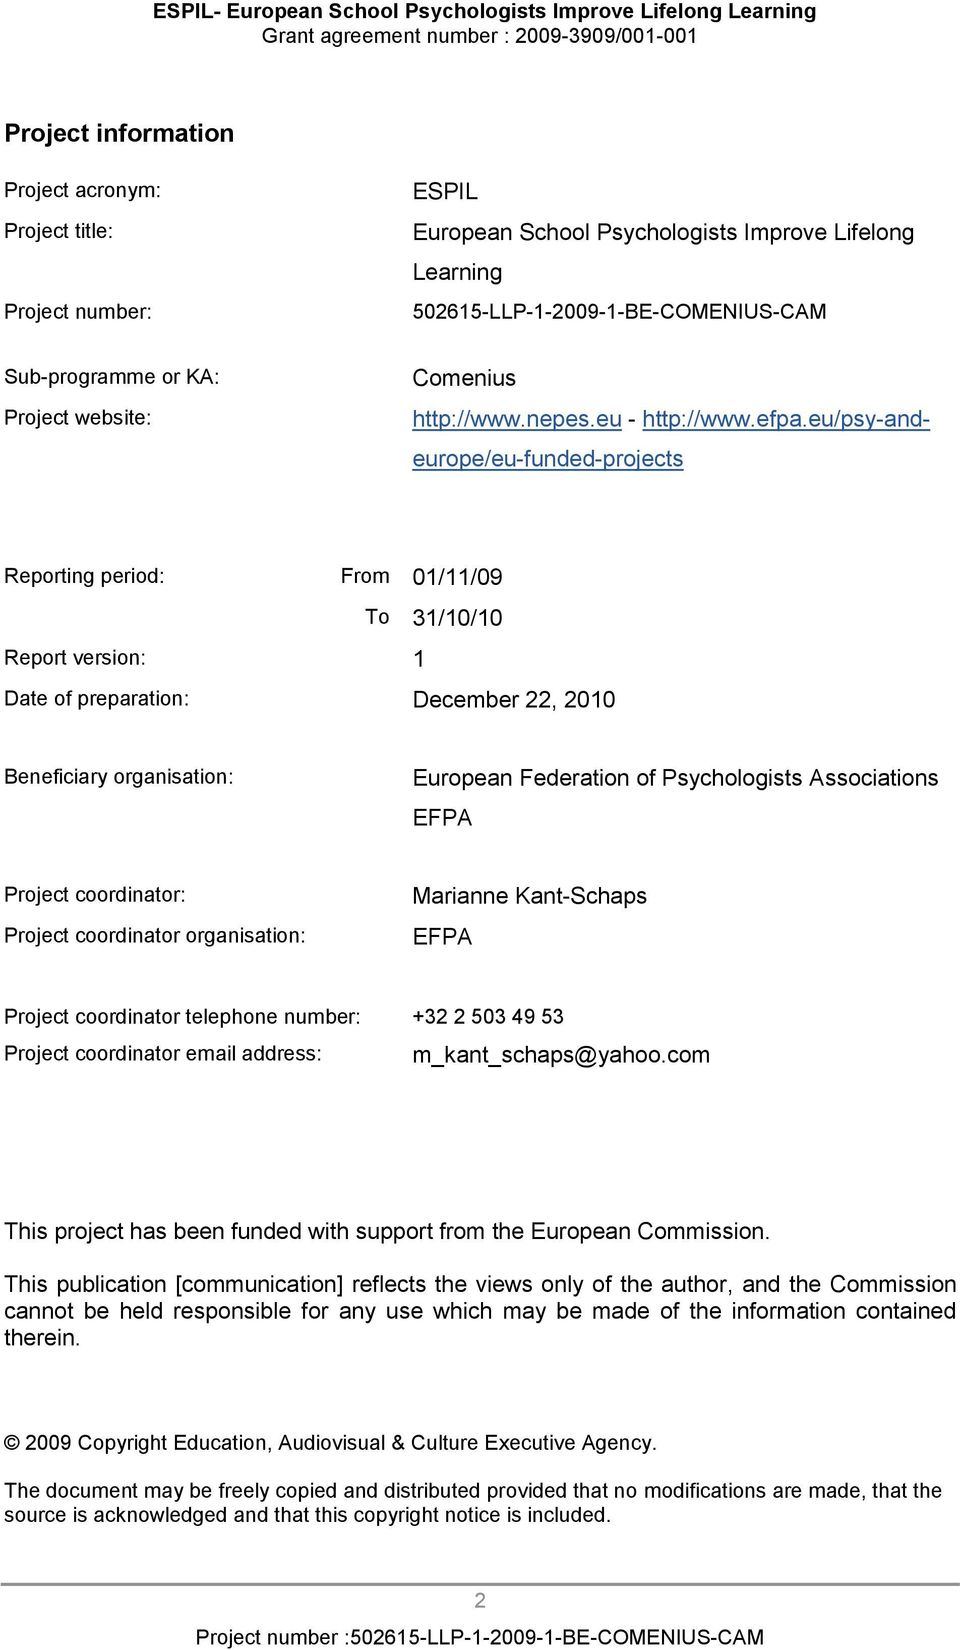 eu/psy-andeurope/eu-funded-projects Reporting period: From 01/11/09 To 31/10/10 Report version: 1 Date of preparation: December 22, 2010 Beneficiary organisation: European Federation of Psychologists